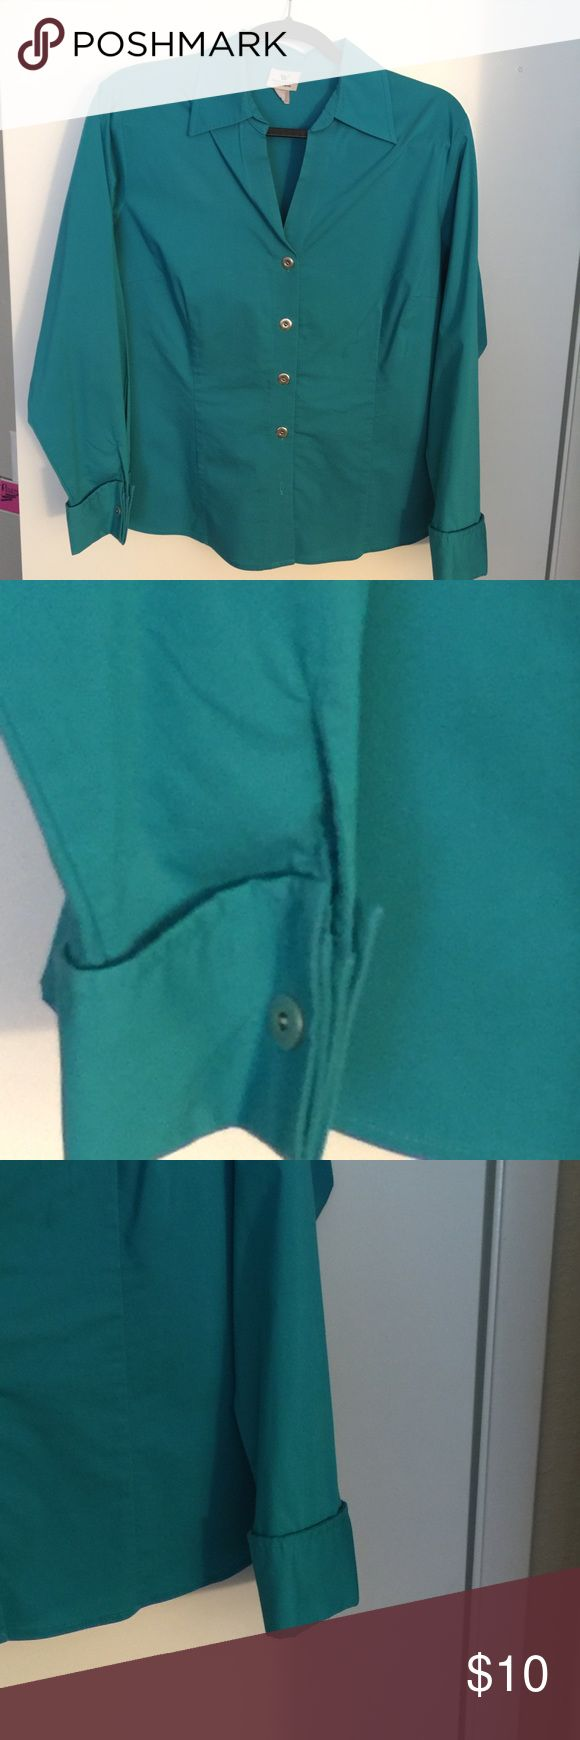 women's Teal Size 16 petite shirt/blouse. Ex cond. Size 16 Petite Worthington women's blouse with stretch and French cuffs. Worn a couple times. Worthington Tops Button Down Shirts